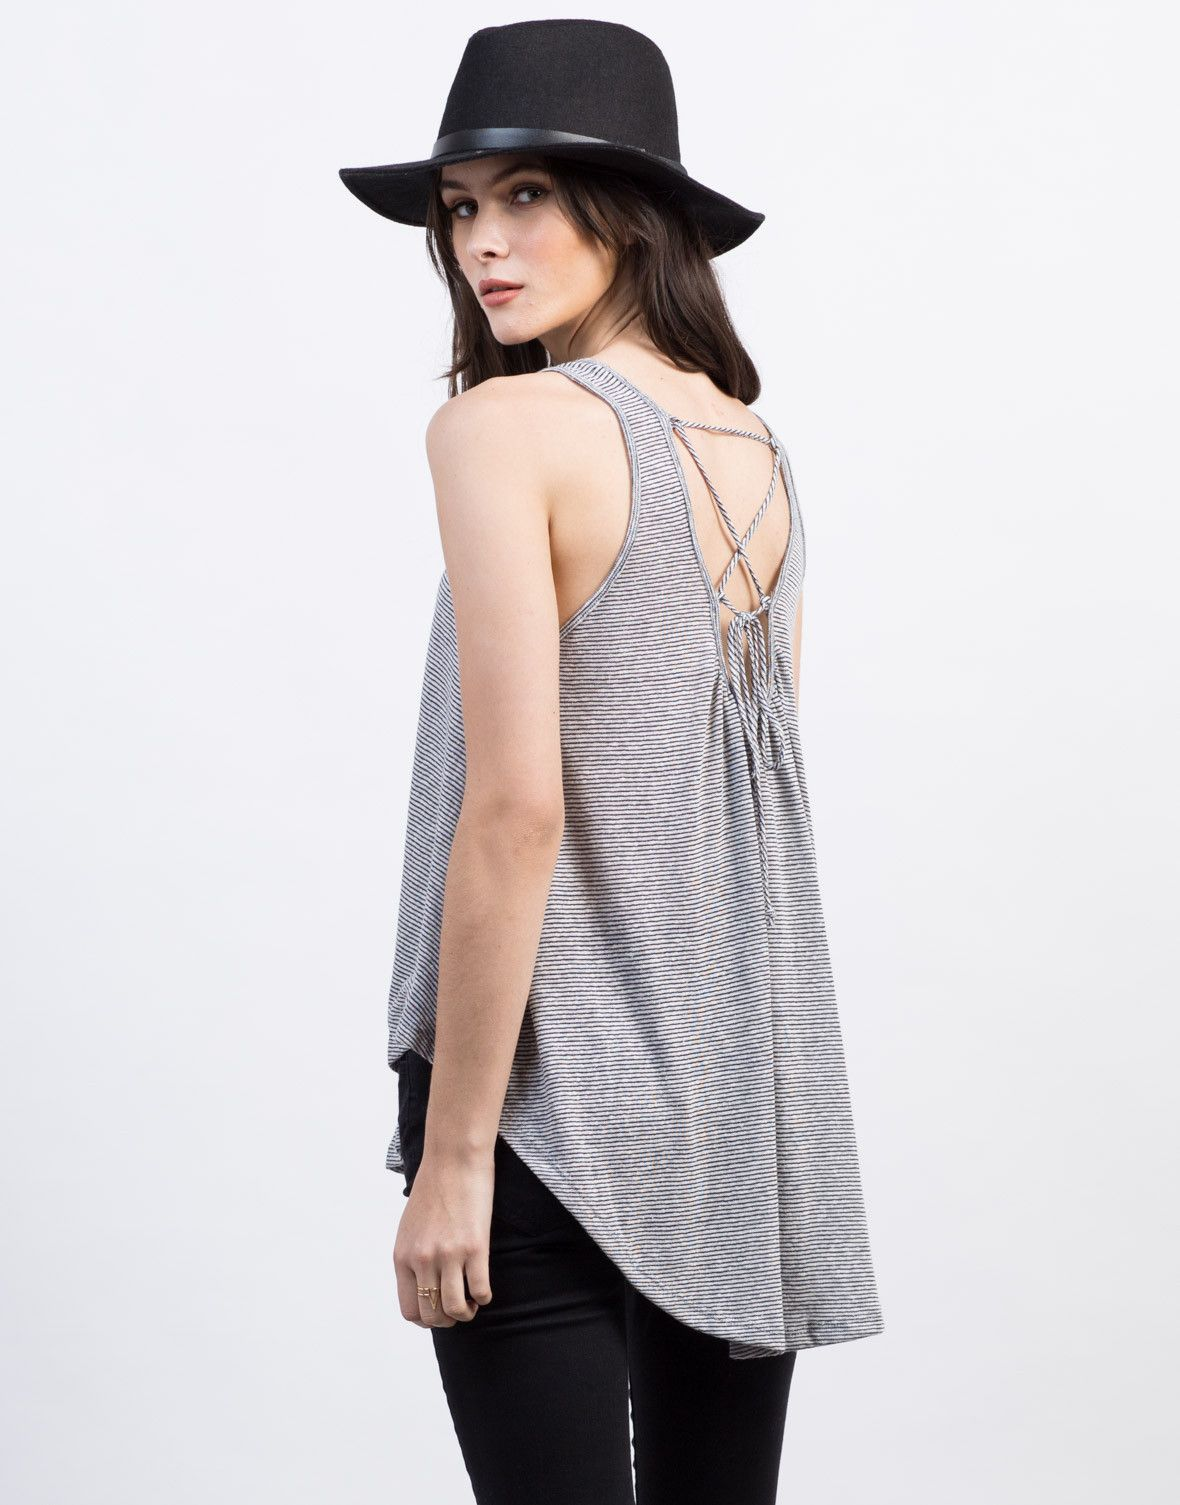 This striped Lace-Up Back Flowy Top features the lace-up details in back that you've been waiting for. Perfect for a casual date with a fedora hat, white shorts, and sandals! Total nautical beach babe look.